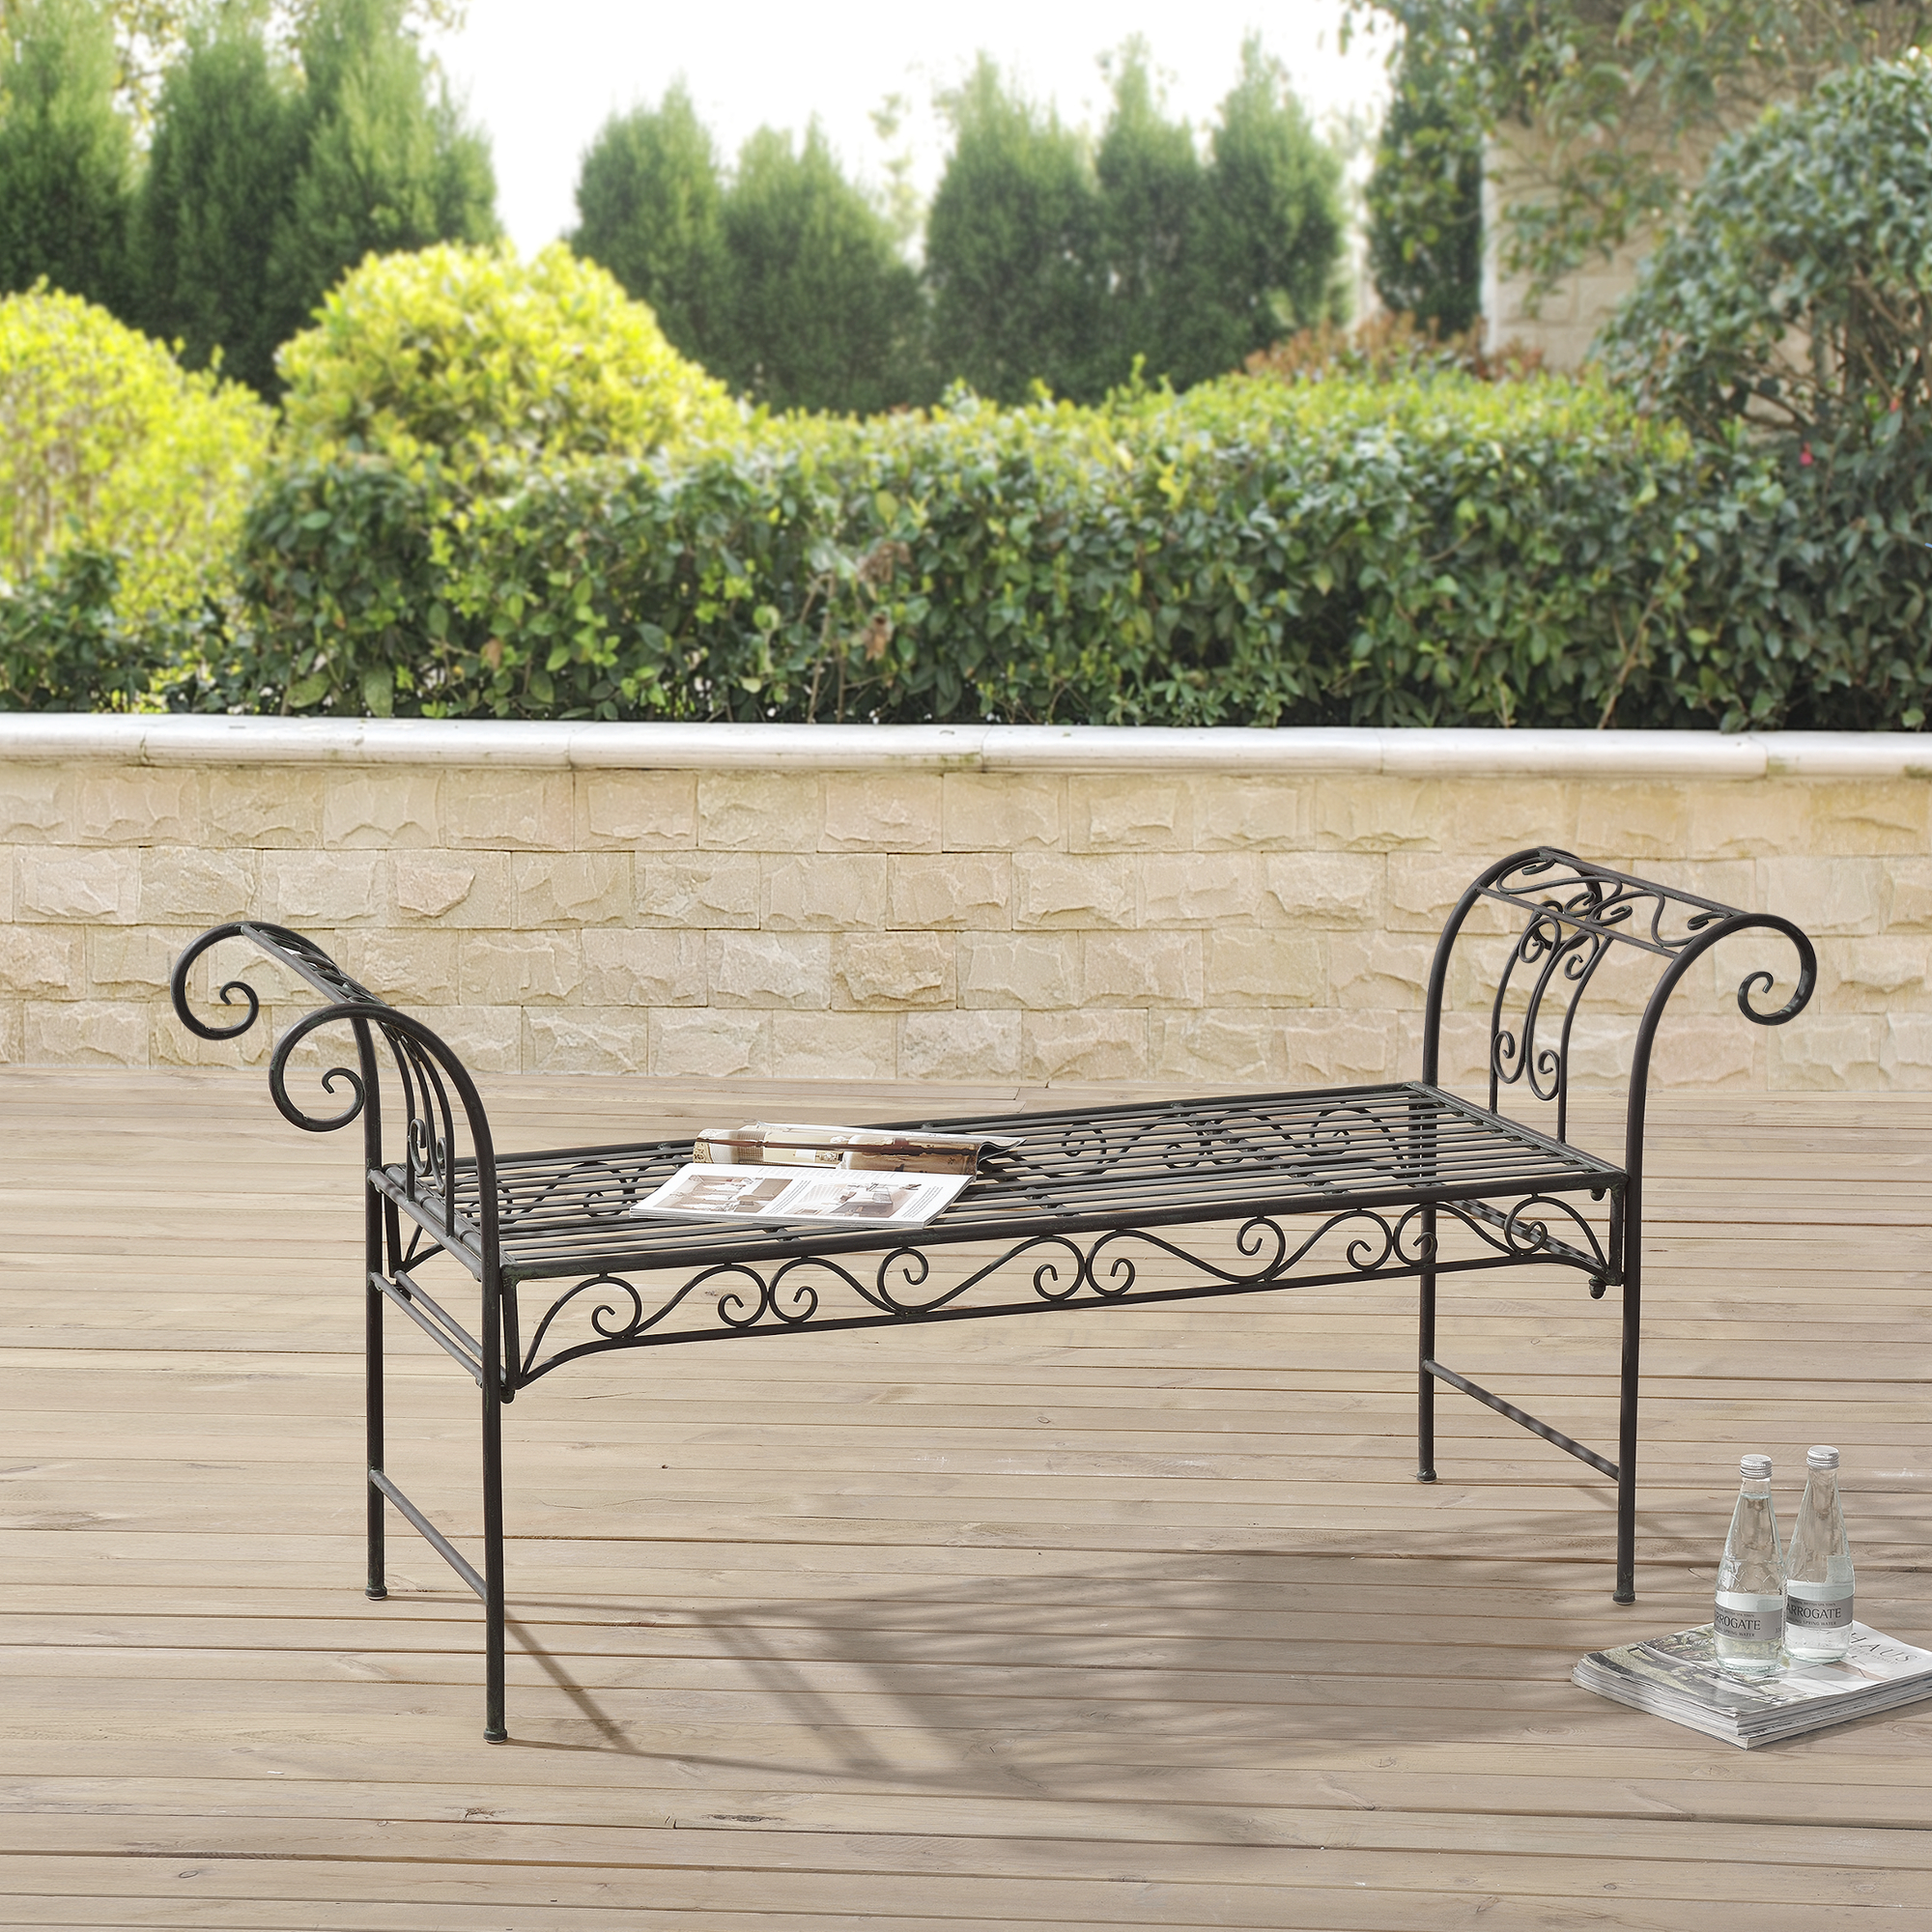 m tal banc de jardin banc banc de jardin si ge 70x147x46 cm fer vert ebay. Black Bedroom Furniture Sets. Home Design Ideas